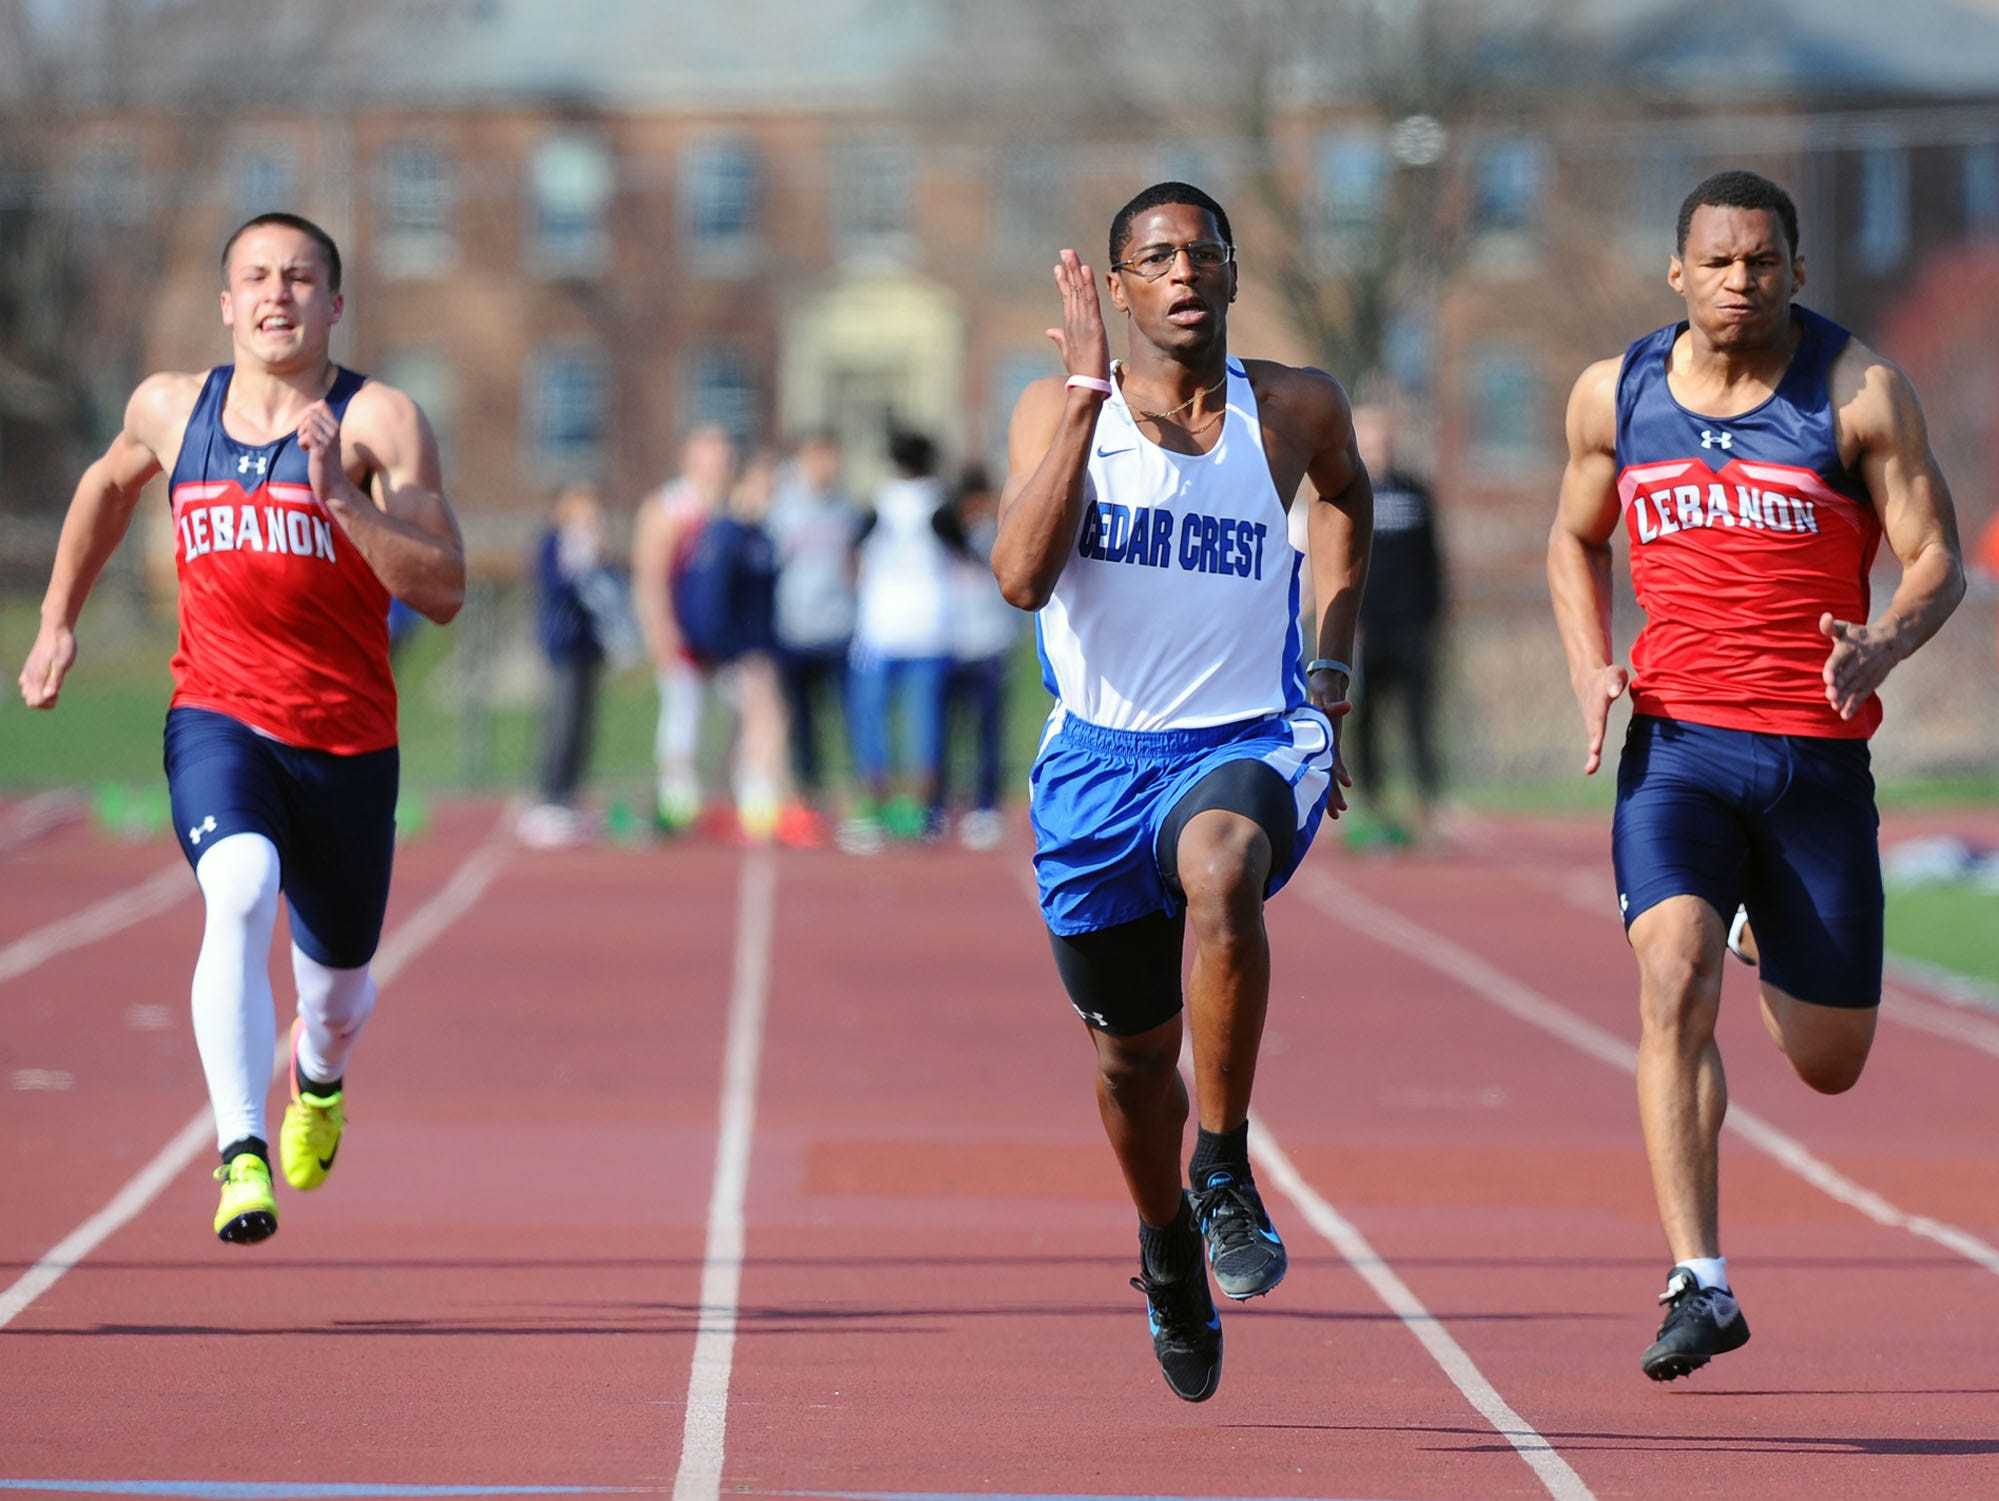 Action from Thursday's Cedar Crest-Lebanon track and field meet that featured Rob Bare's 200th win as Cedar Crest boys coach.